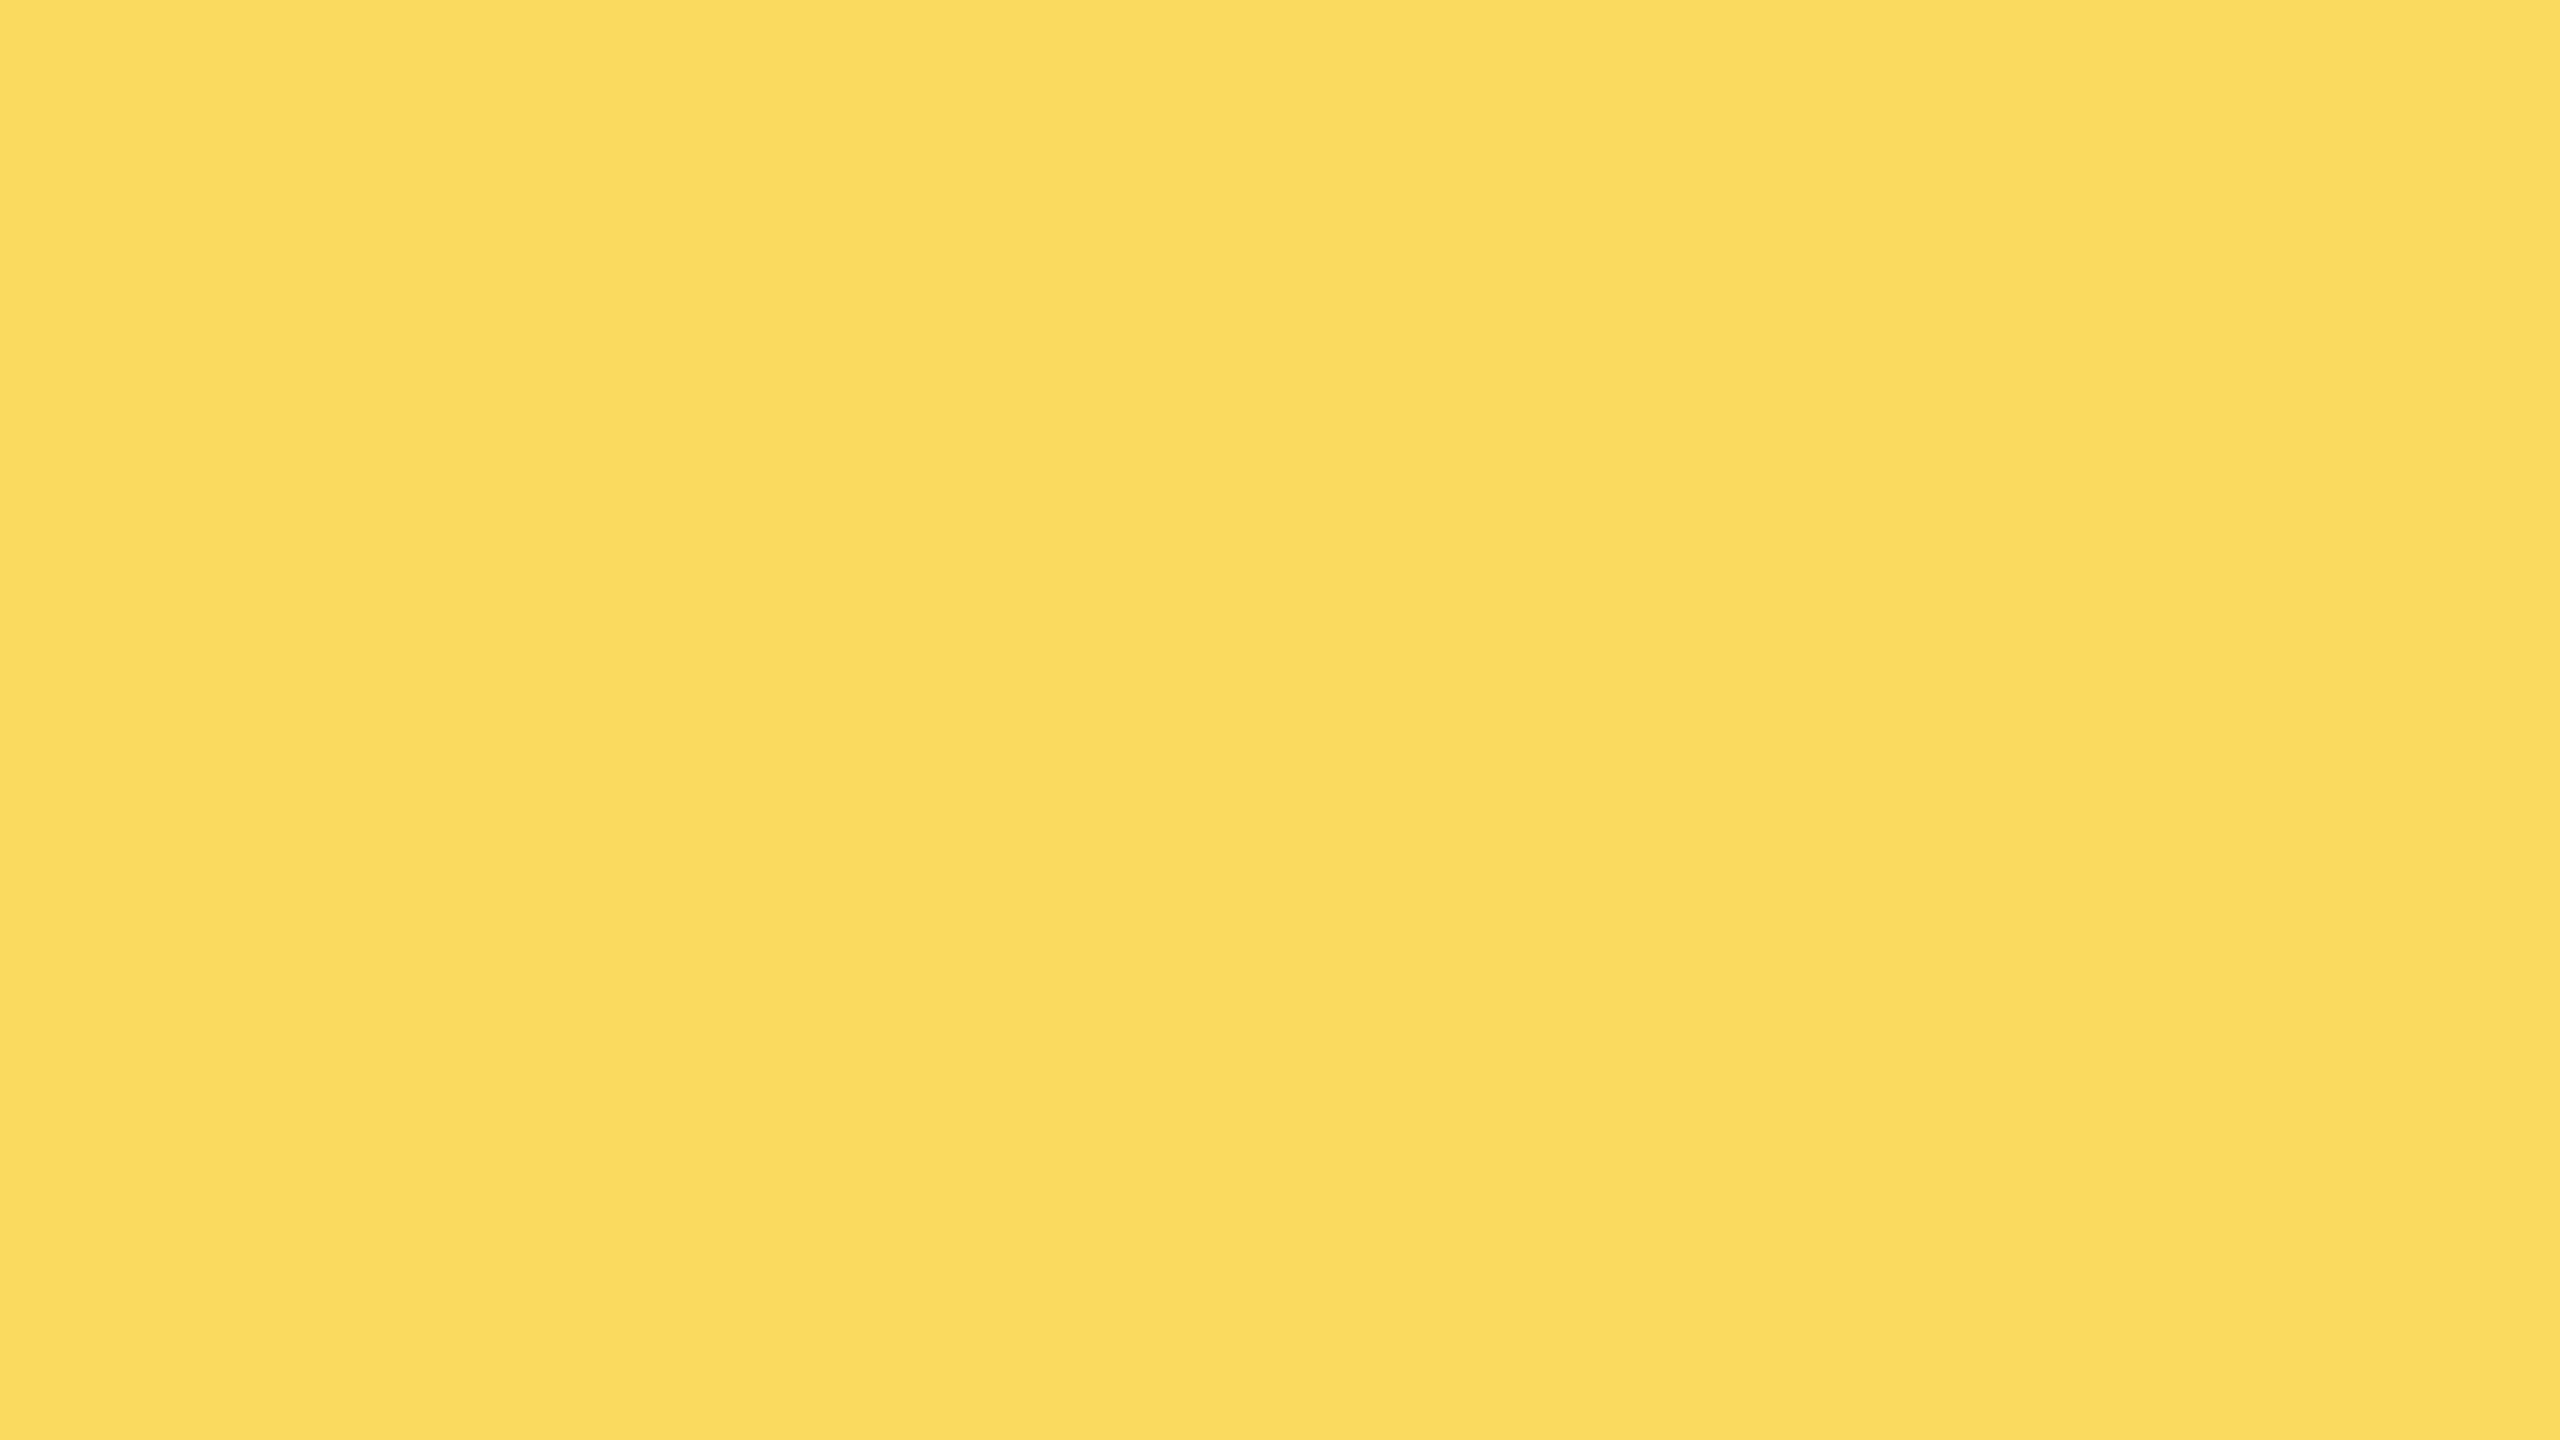 2560x1440 Royal Yellow Solid Color Background